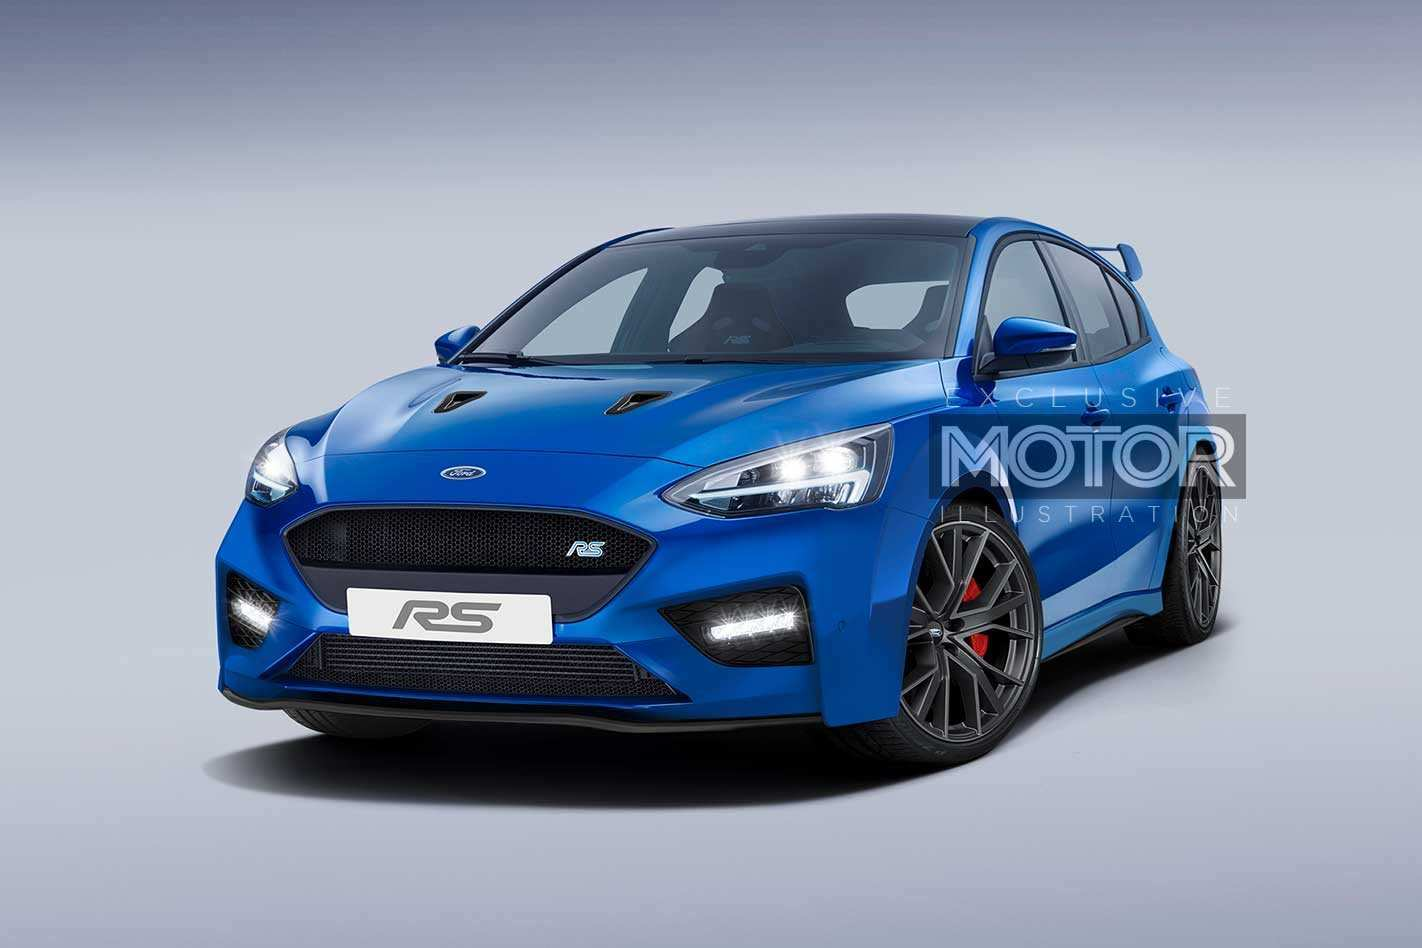 44 Concept of 2020 Ford Focus RS Price and Review with 2020 Ford Focus RS